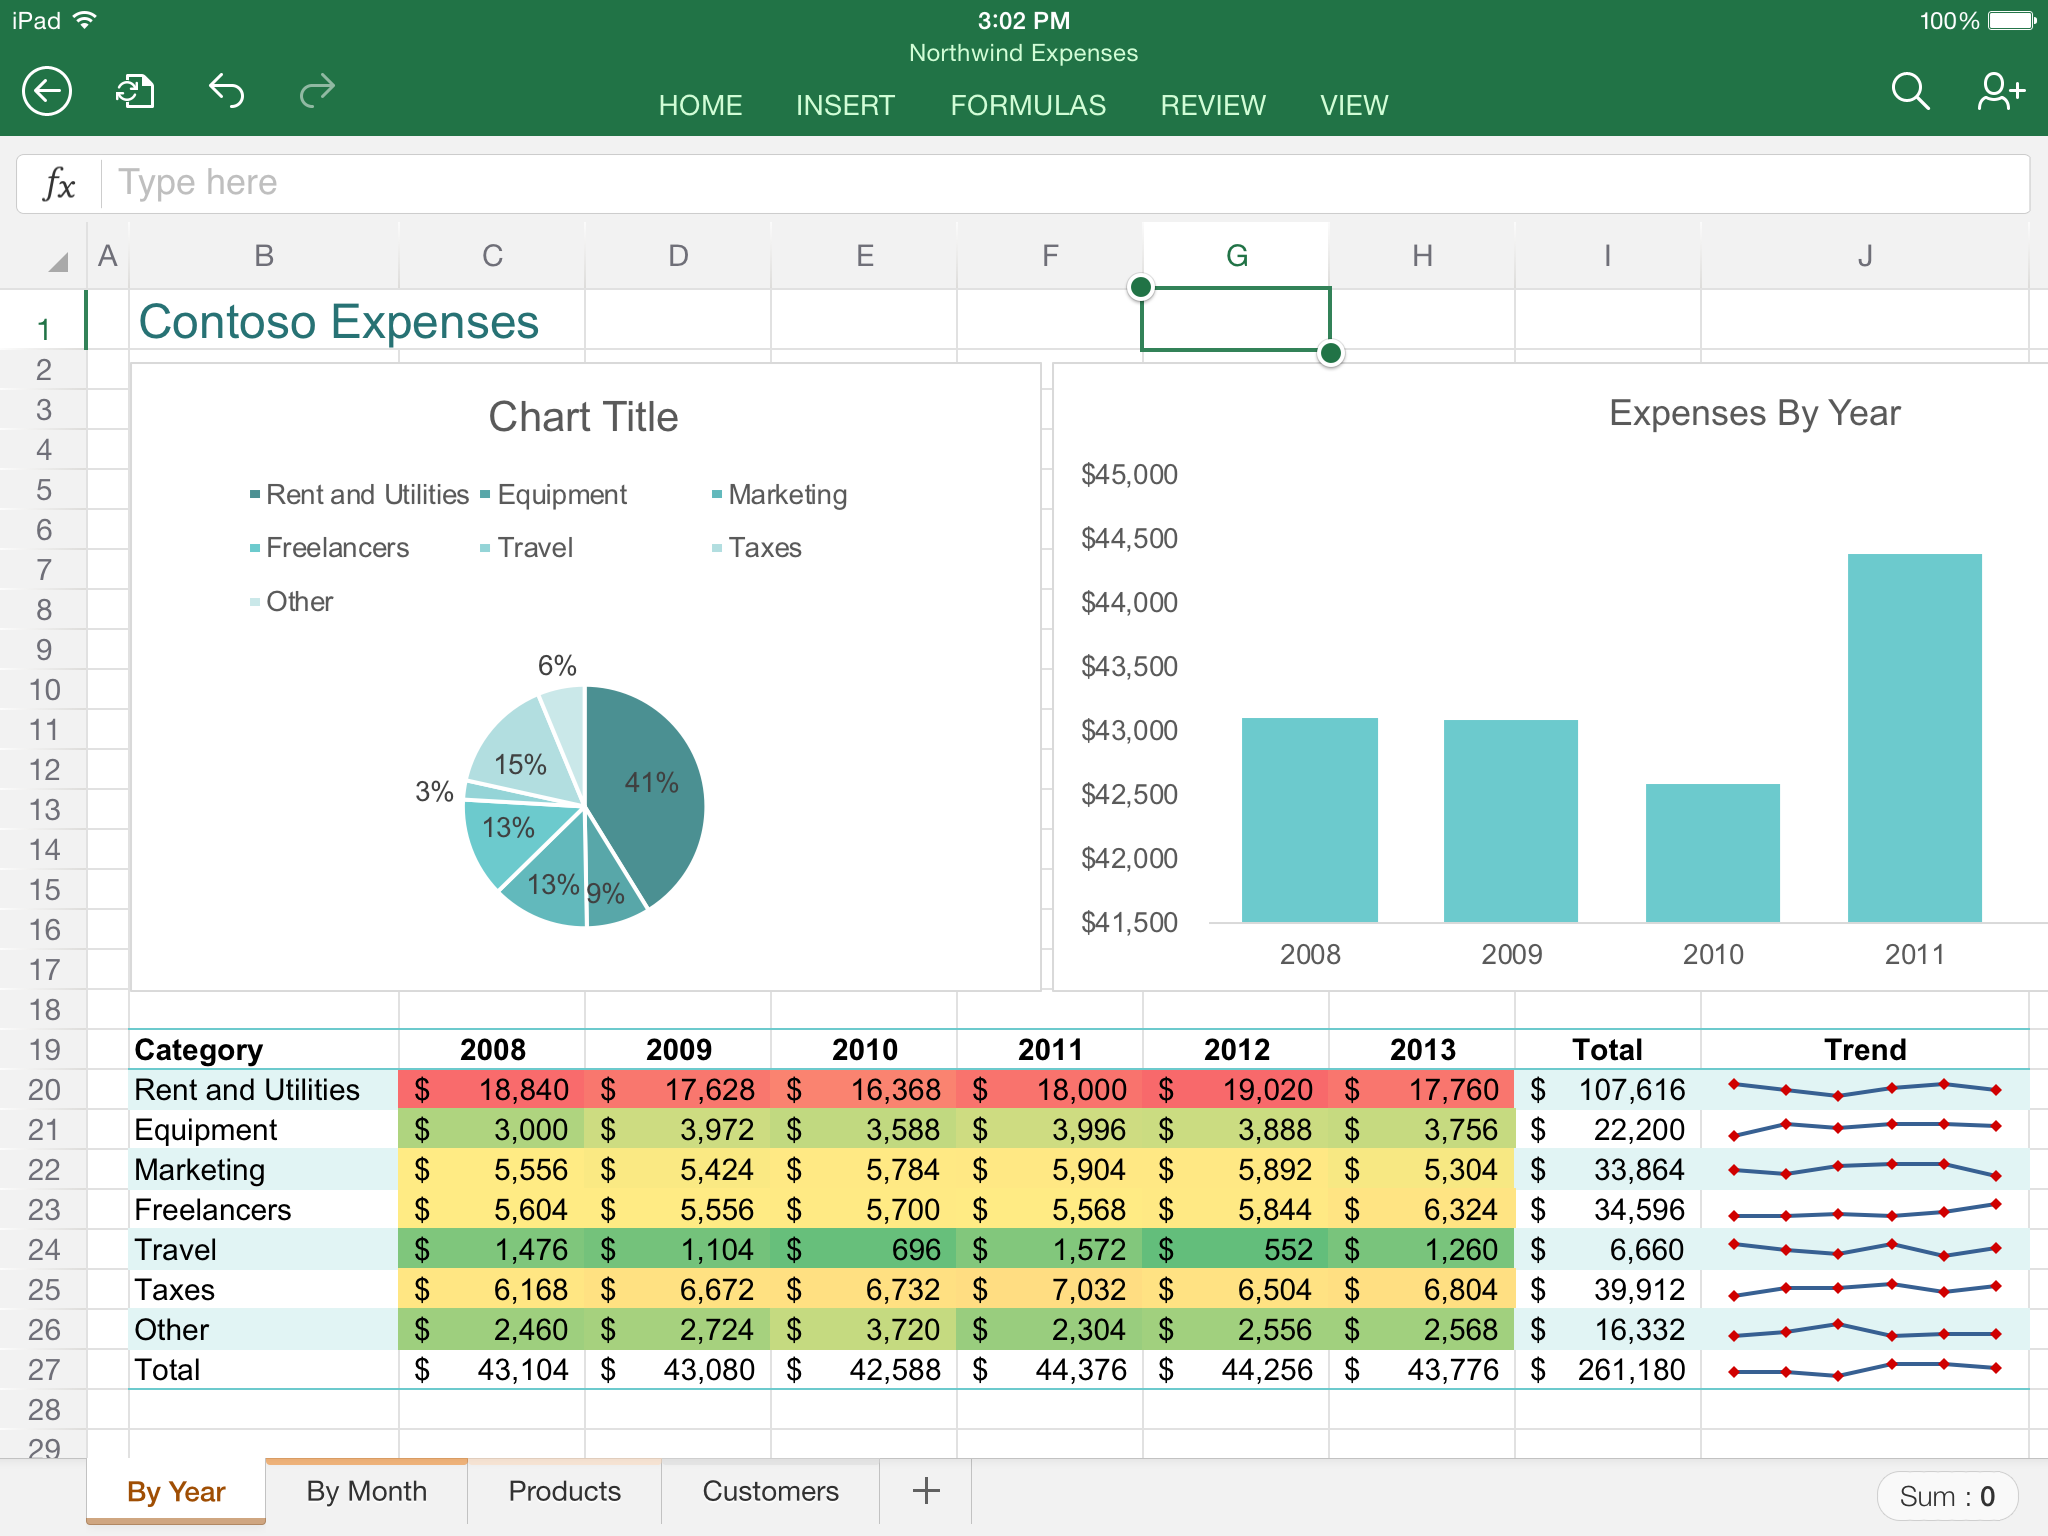 Ediblewildsus  Personable App Highlight Excel  Mobile Digital Now With Gorgeous Excel In Action With Astounding Excel Tutorial Macros Also Excel  Autosave Location In Addition Action Plan Excel Template And Microsoft Excel Trial Download As Well As Excel Macro Active Cell Additionally Excel Formula Mean From Youstonybrookedu With Ediblewildsus  Gorgeous App Highlight Excel  Mobile Digital Now With Astounding Excel In Action And Personable Excel Tutorial Macros Also Excel  Autosave Location In Addition Action Plan Excel Template From Youstonybrookedu